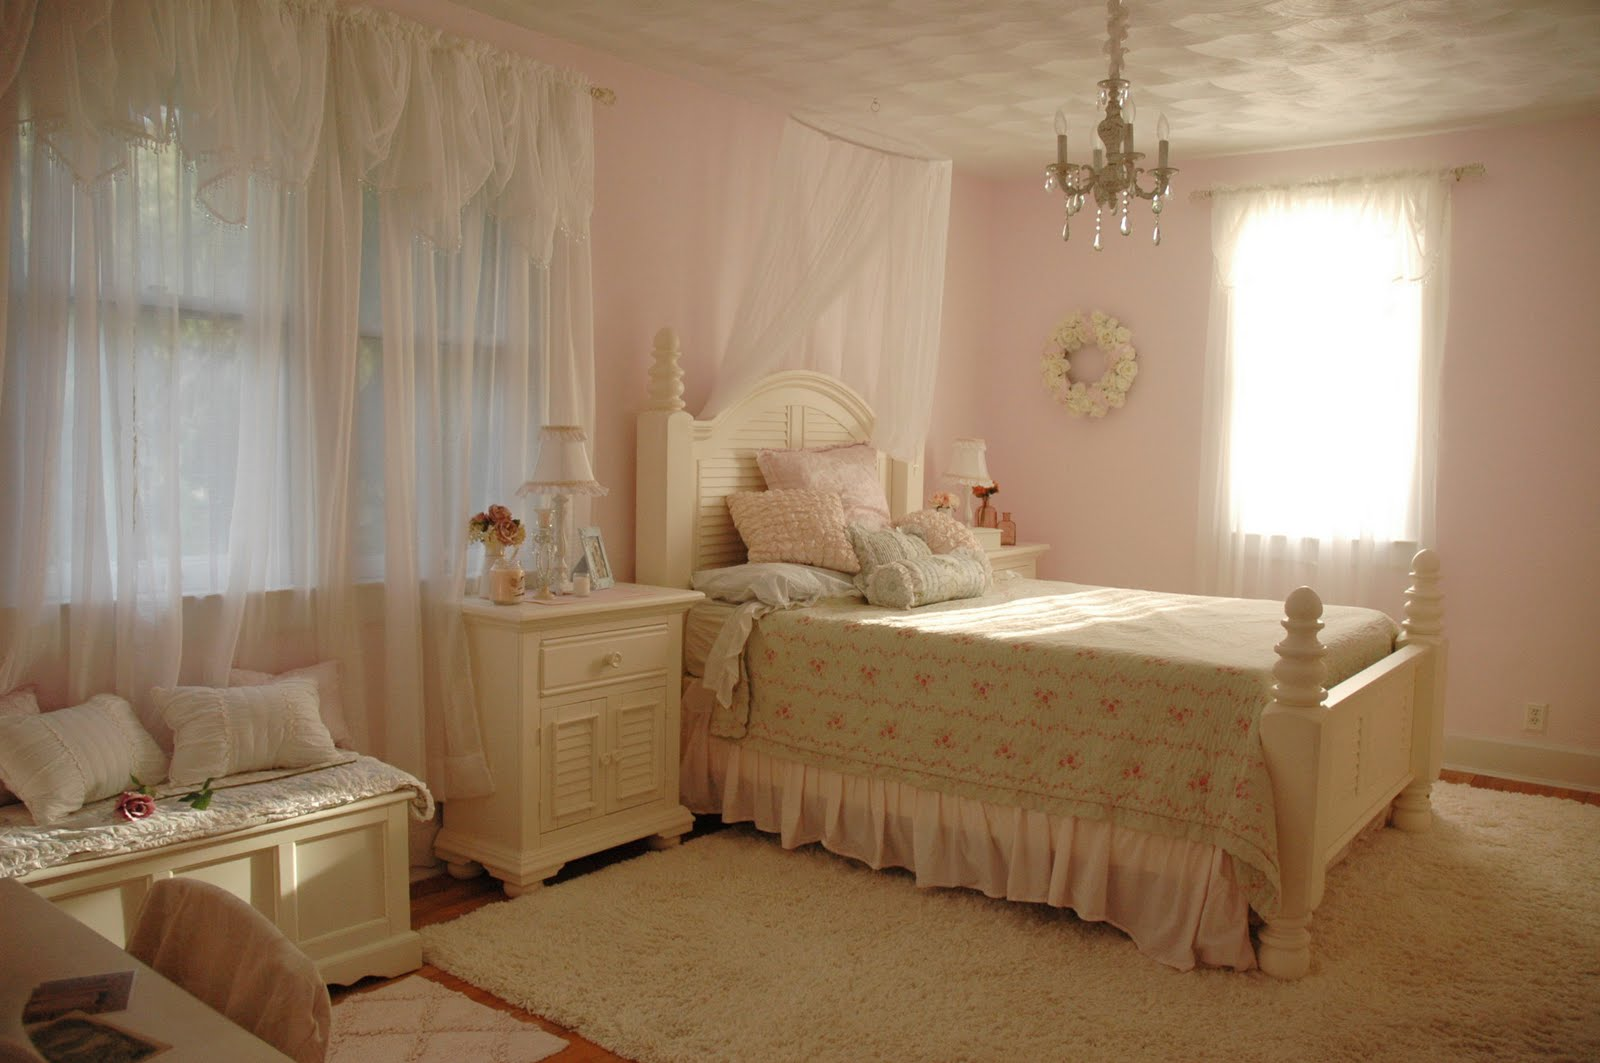 A Beautiful Bedroom Renovation